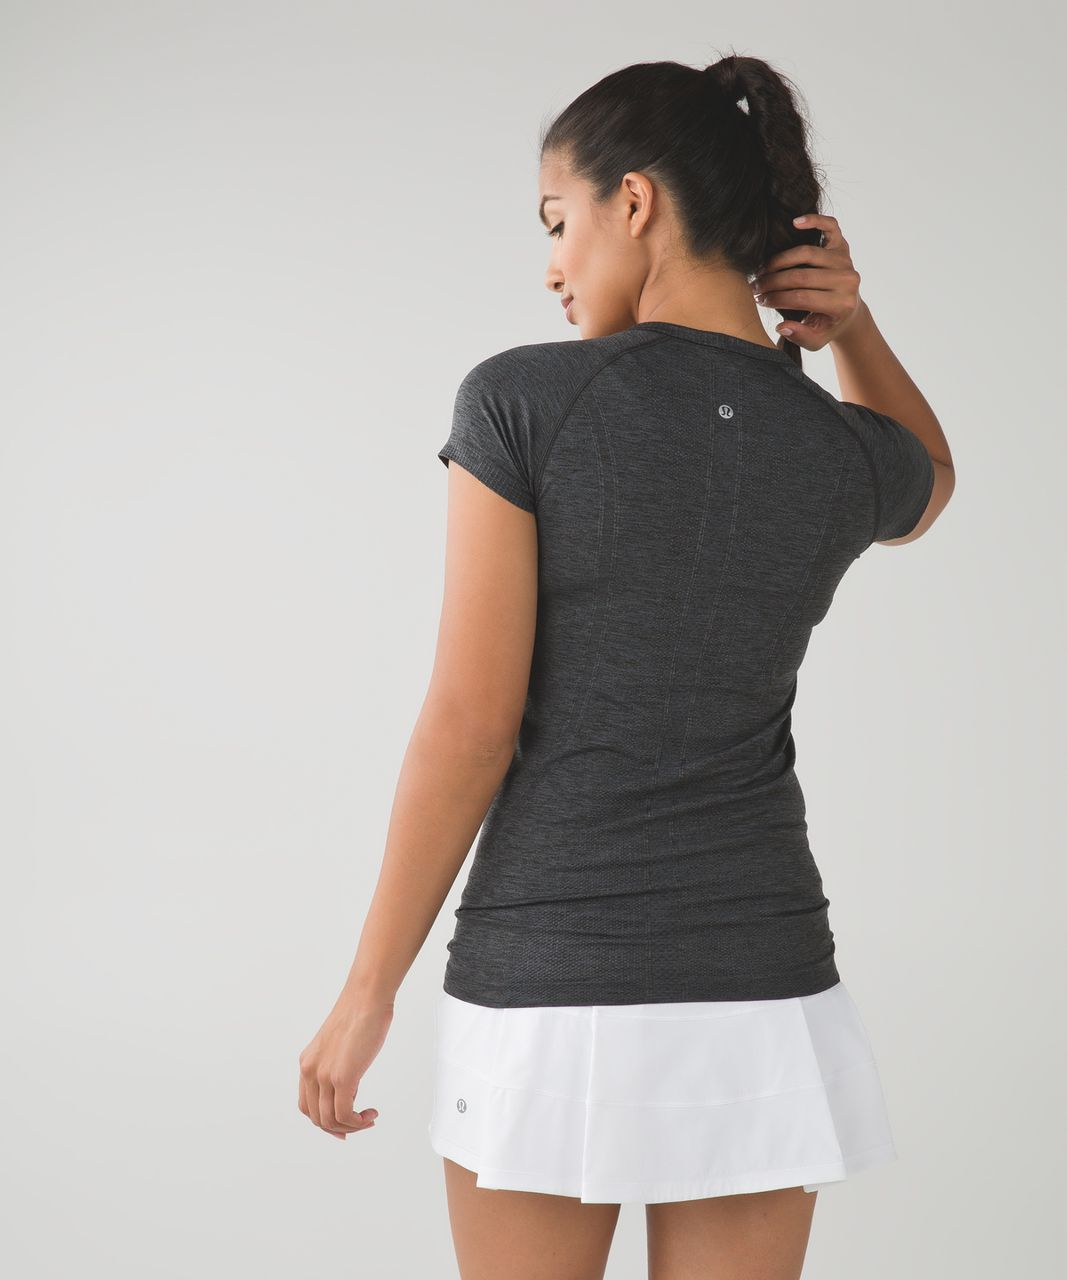 Lululemon Swiftly Tech Short Sleeve Crew - Heathered Dark Slate